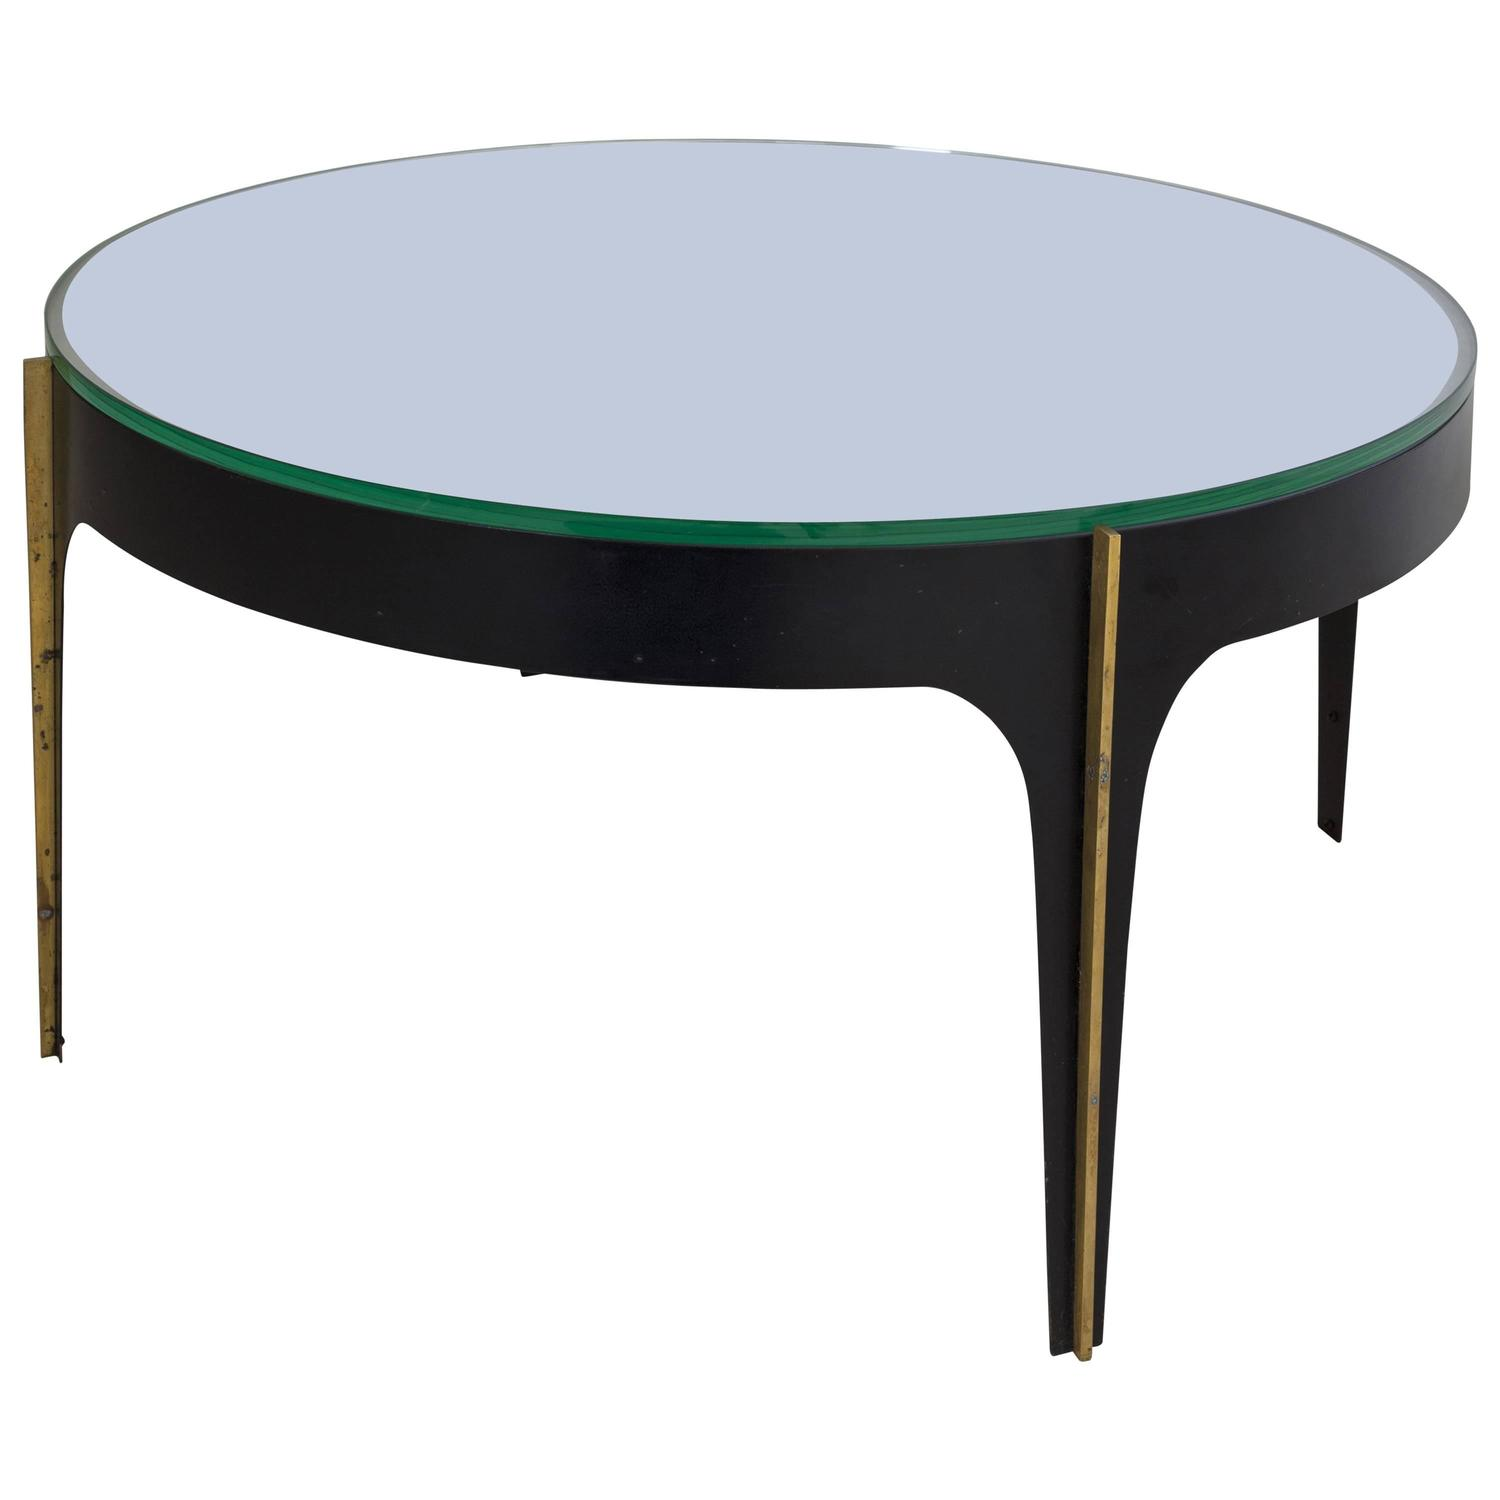 Max Ingrand Coffee Table 1774 Model Manufactured by Fontana Arte